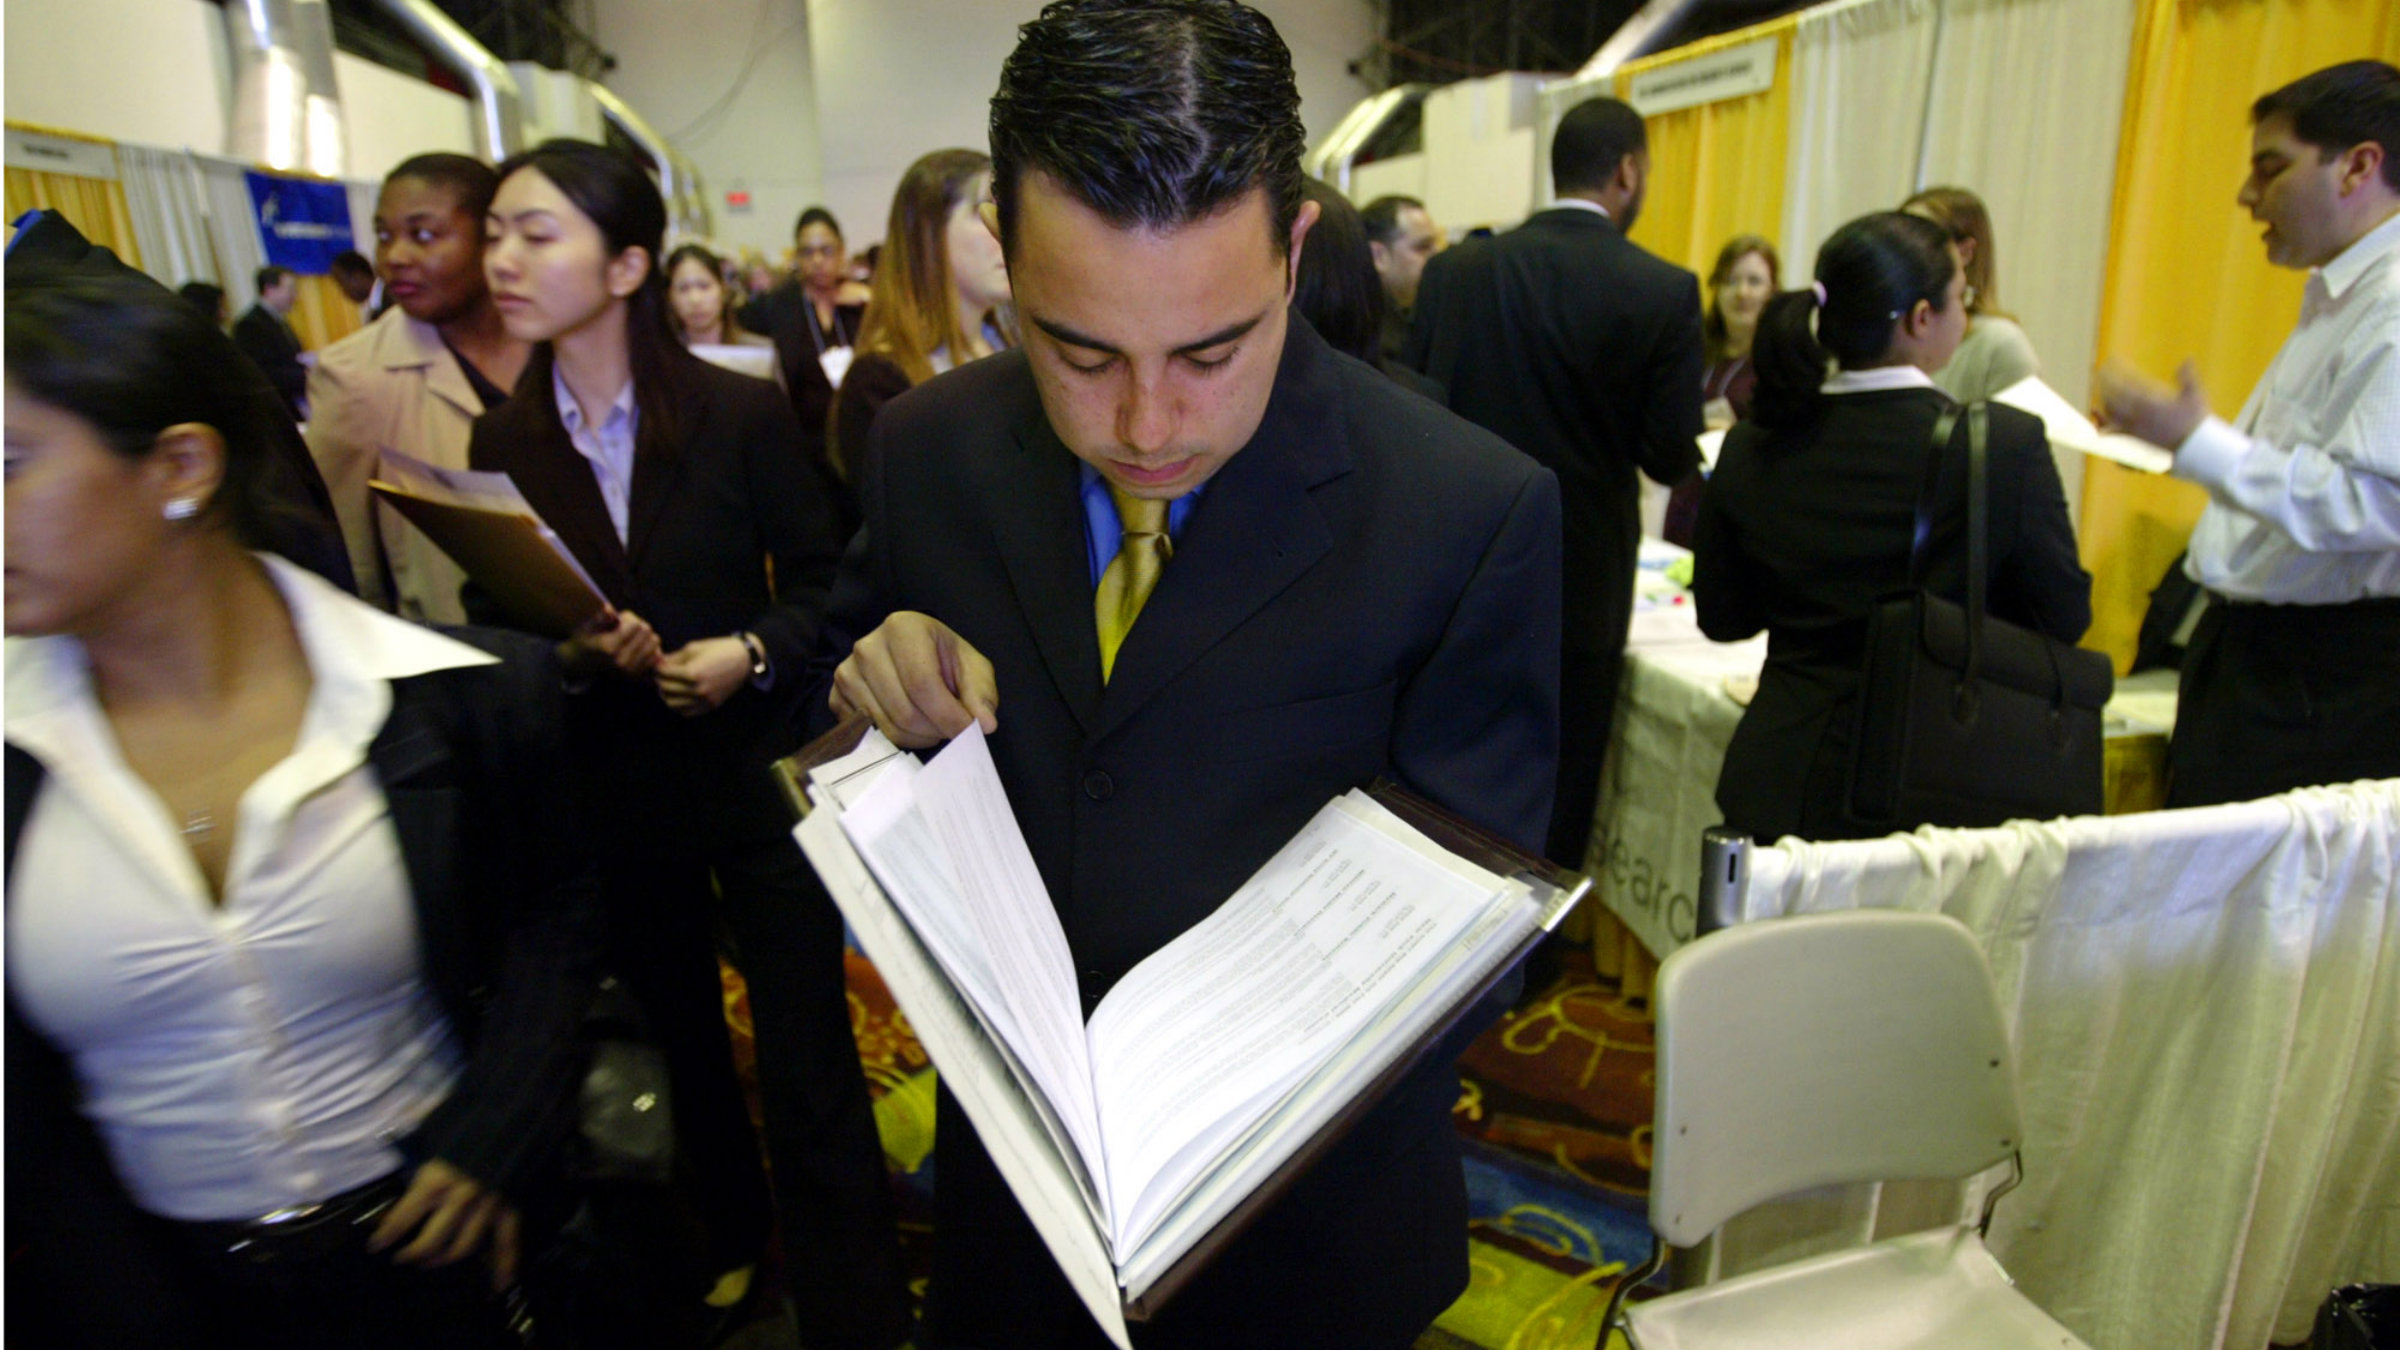 job fair AP Photo Bebeto Matthews